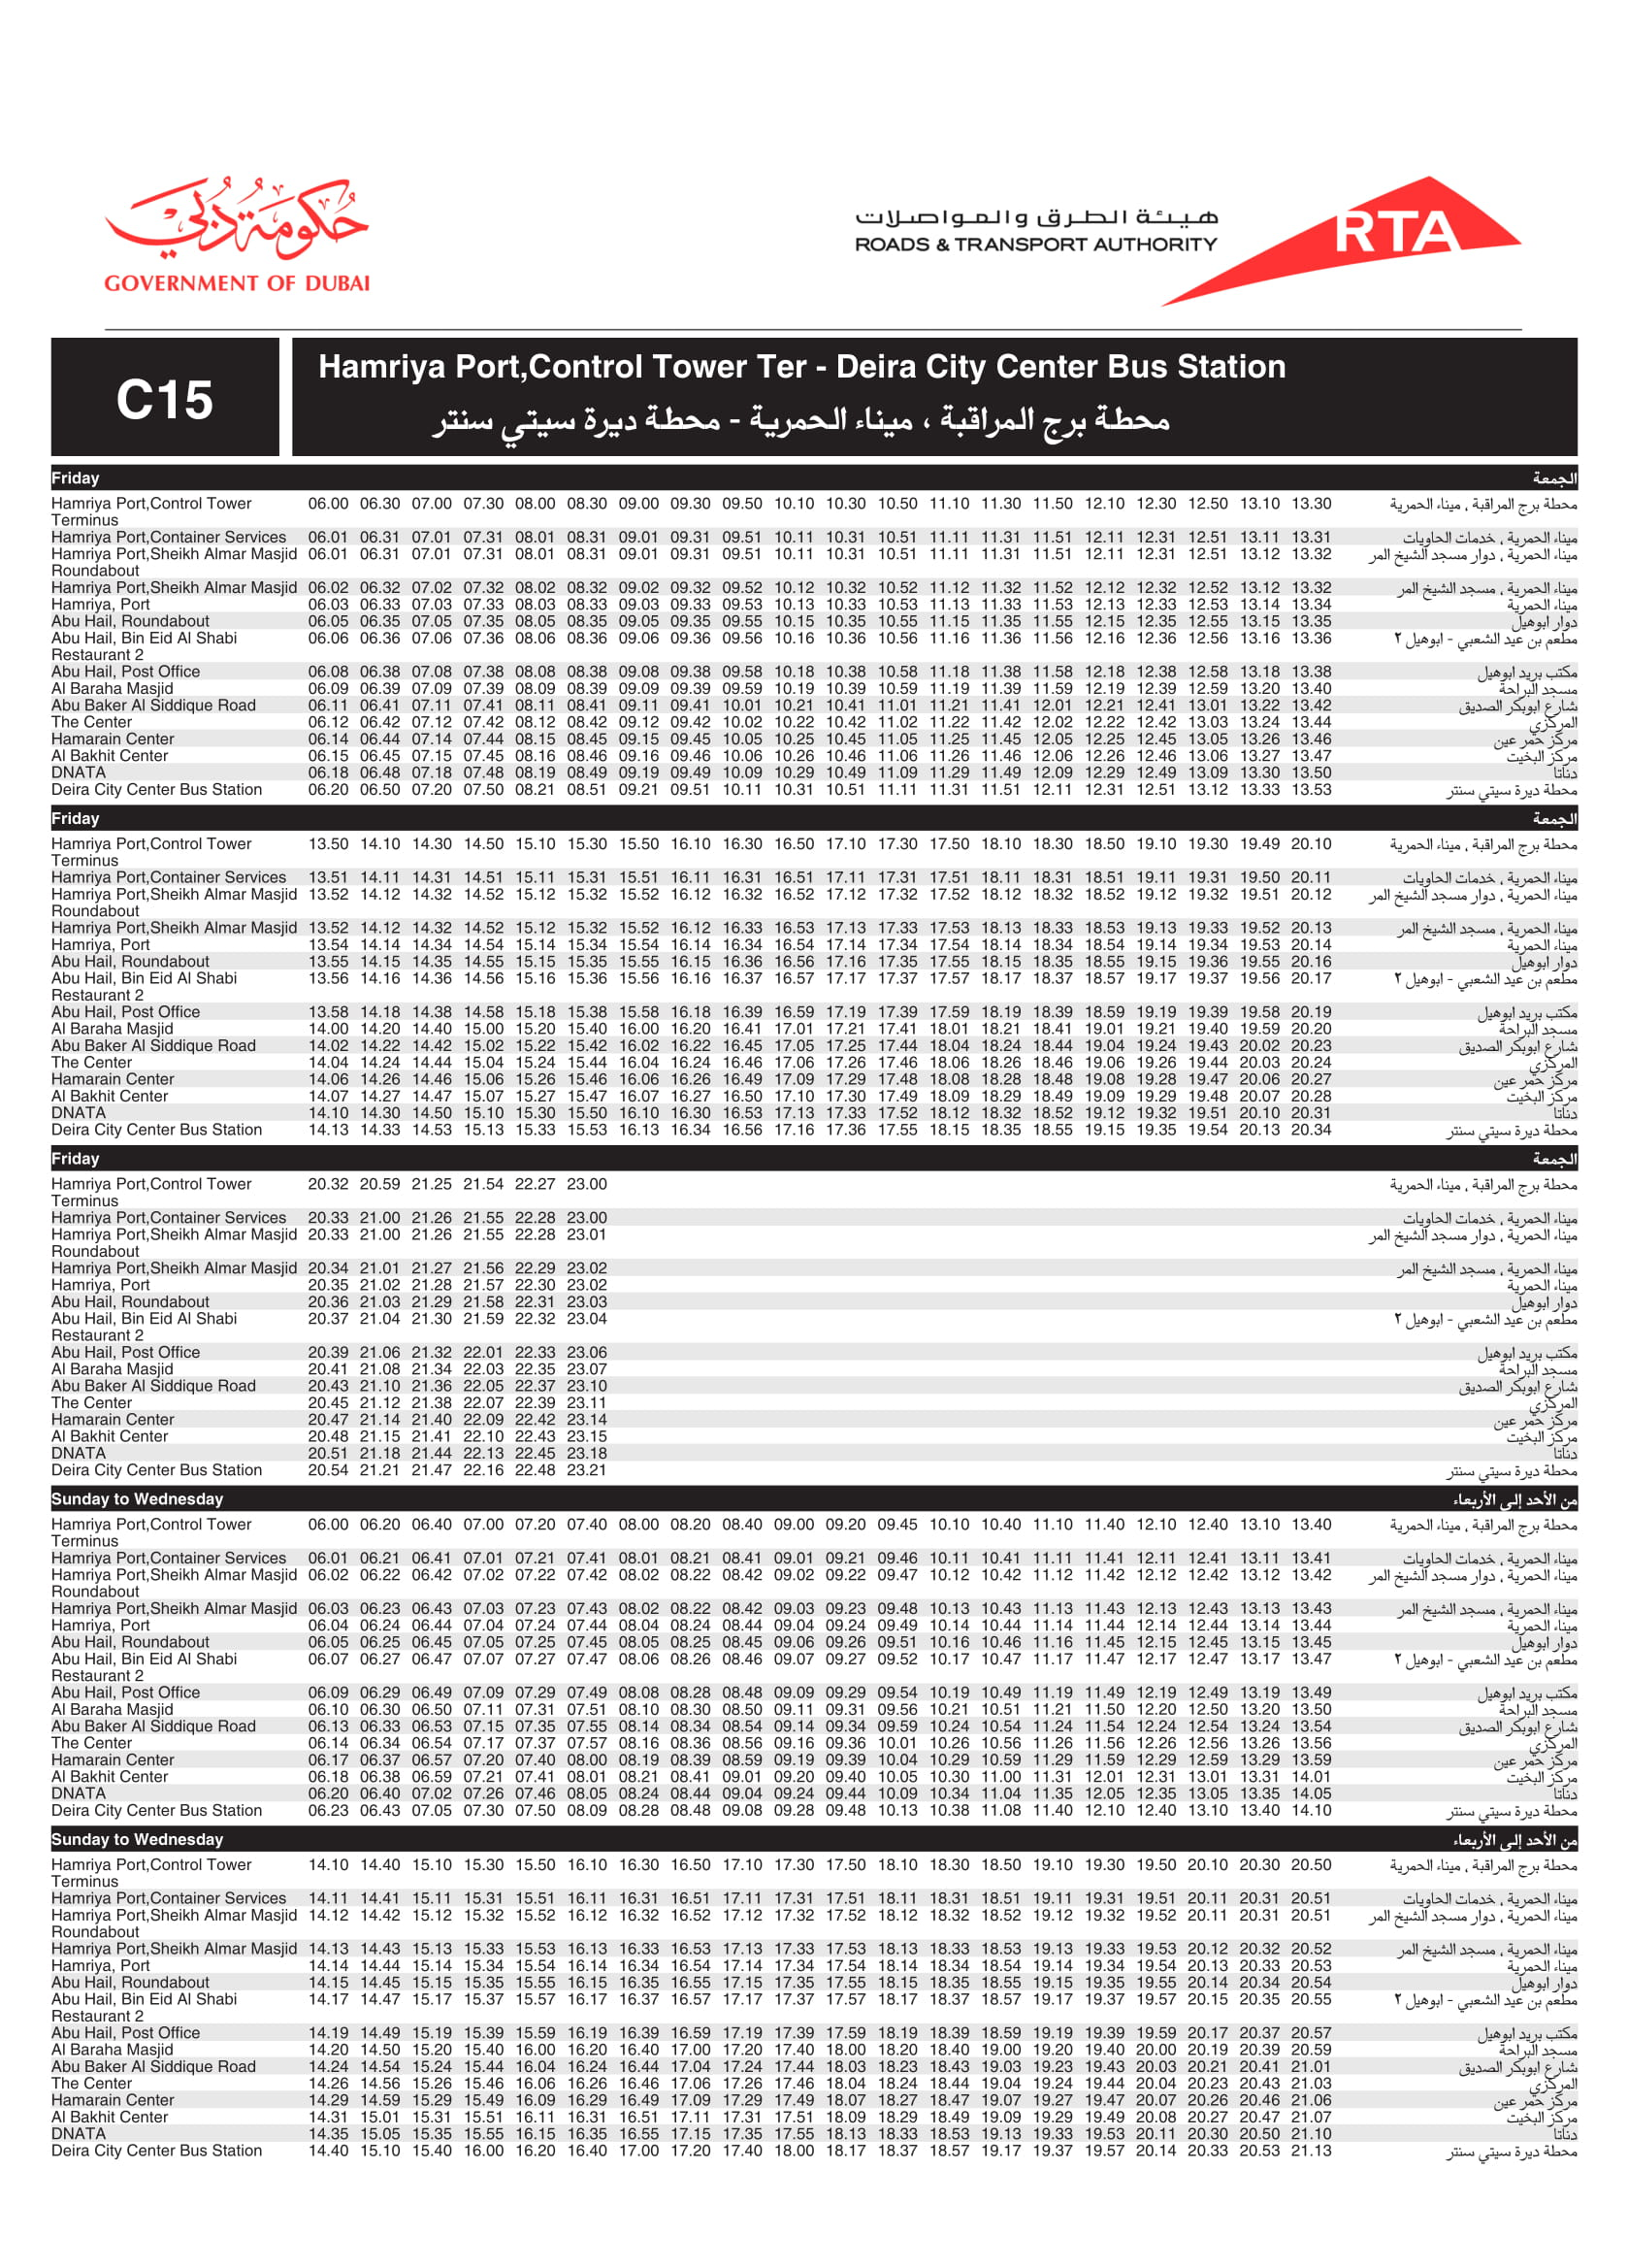 C15 Bus Route In Dubai Time Schedule Stops And Maps